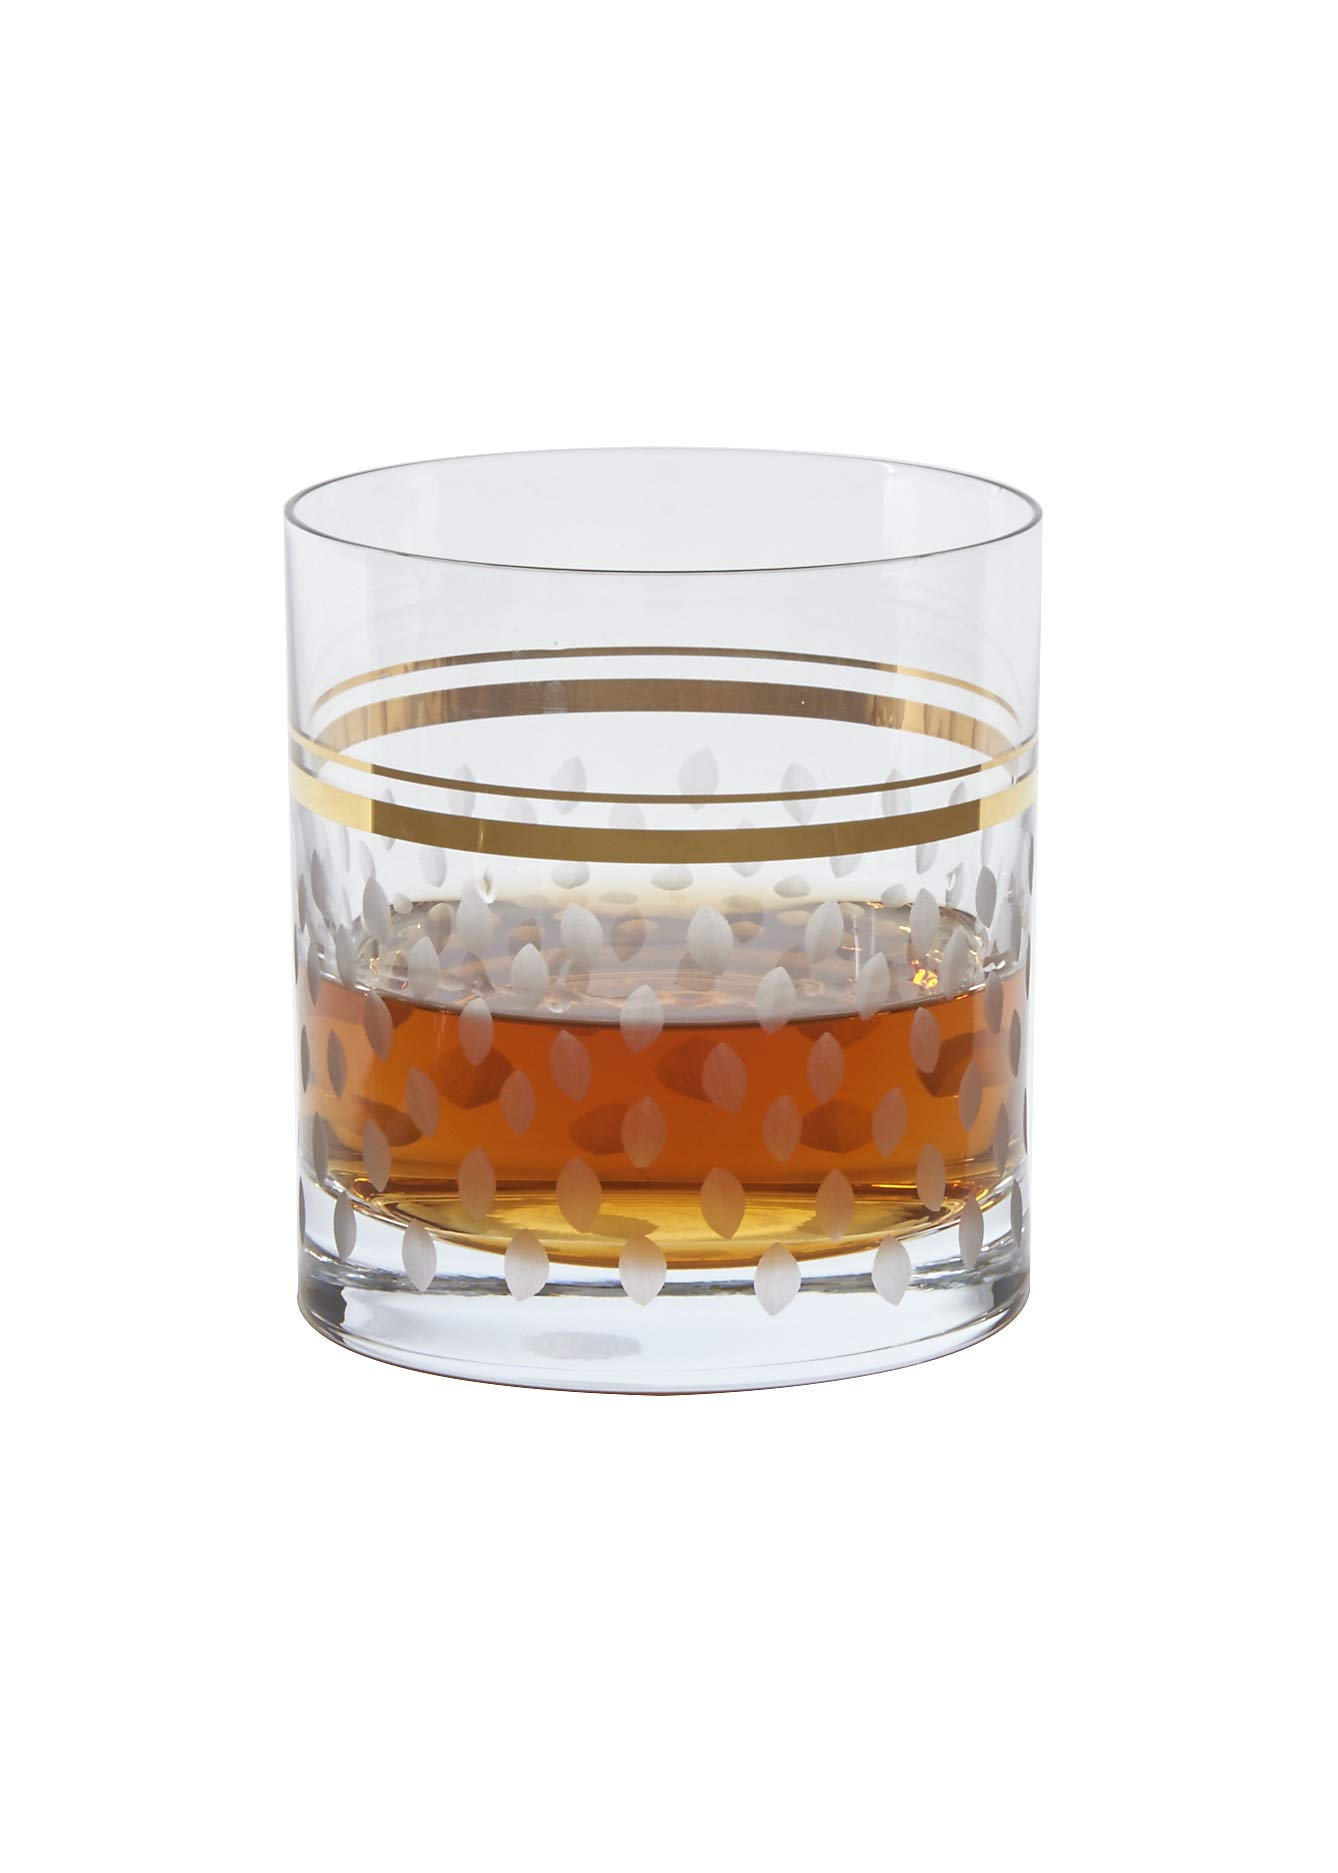 Glazze Crystal Set of 6 Handcrafted Whiskey Glasses with Hand Painted Real Gold Trim Detailing - Hand Cut Raindrops Pattern - Luxurious Gift for Men and Women - For Whisky on the Rocks or Soft Drinks